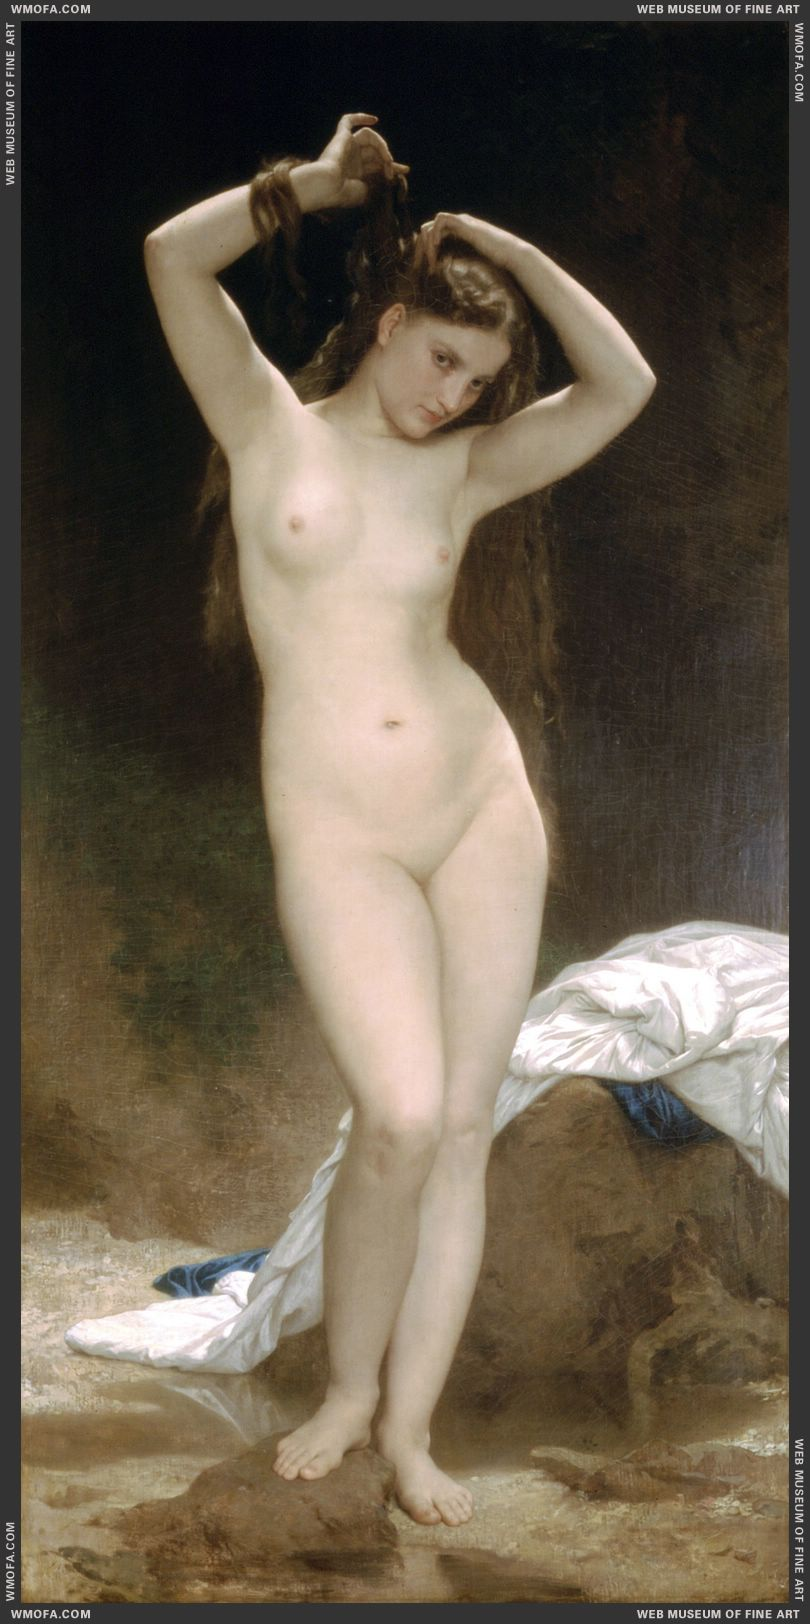 Baigneuse - Bather 1870 by Bouguereau, William